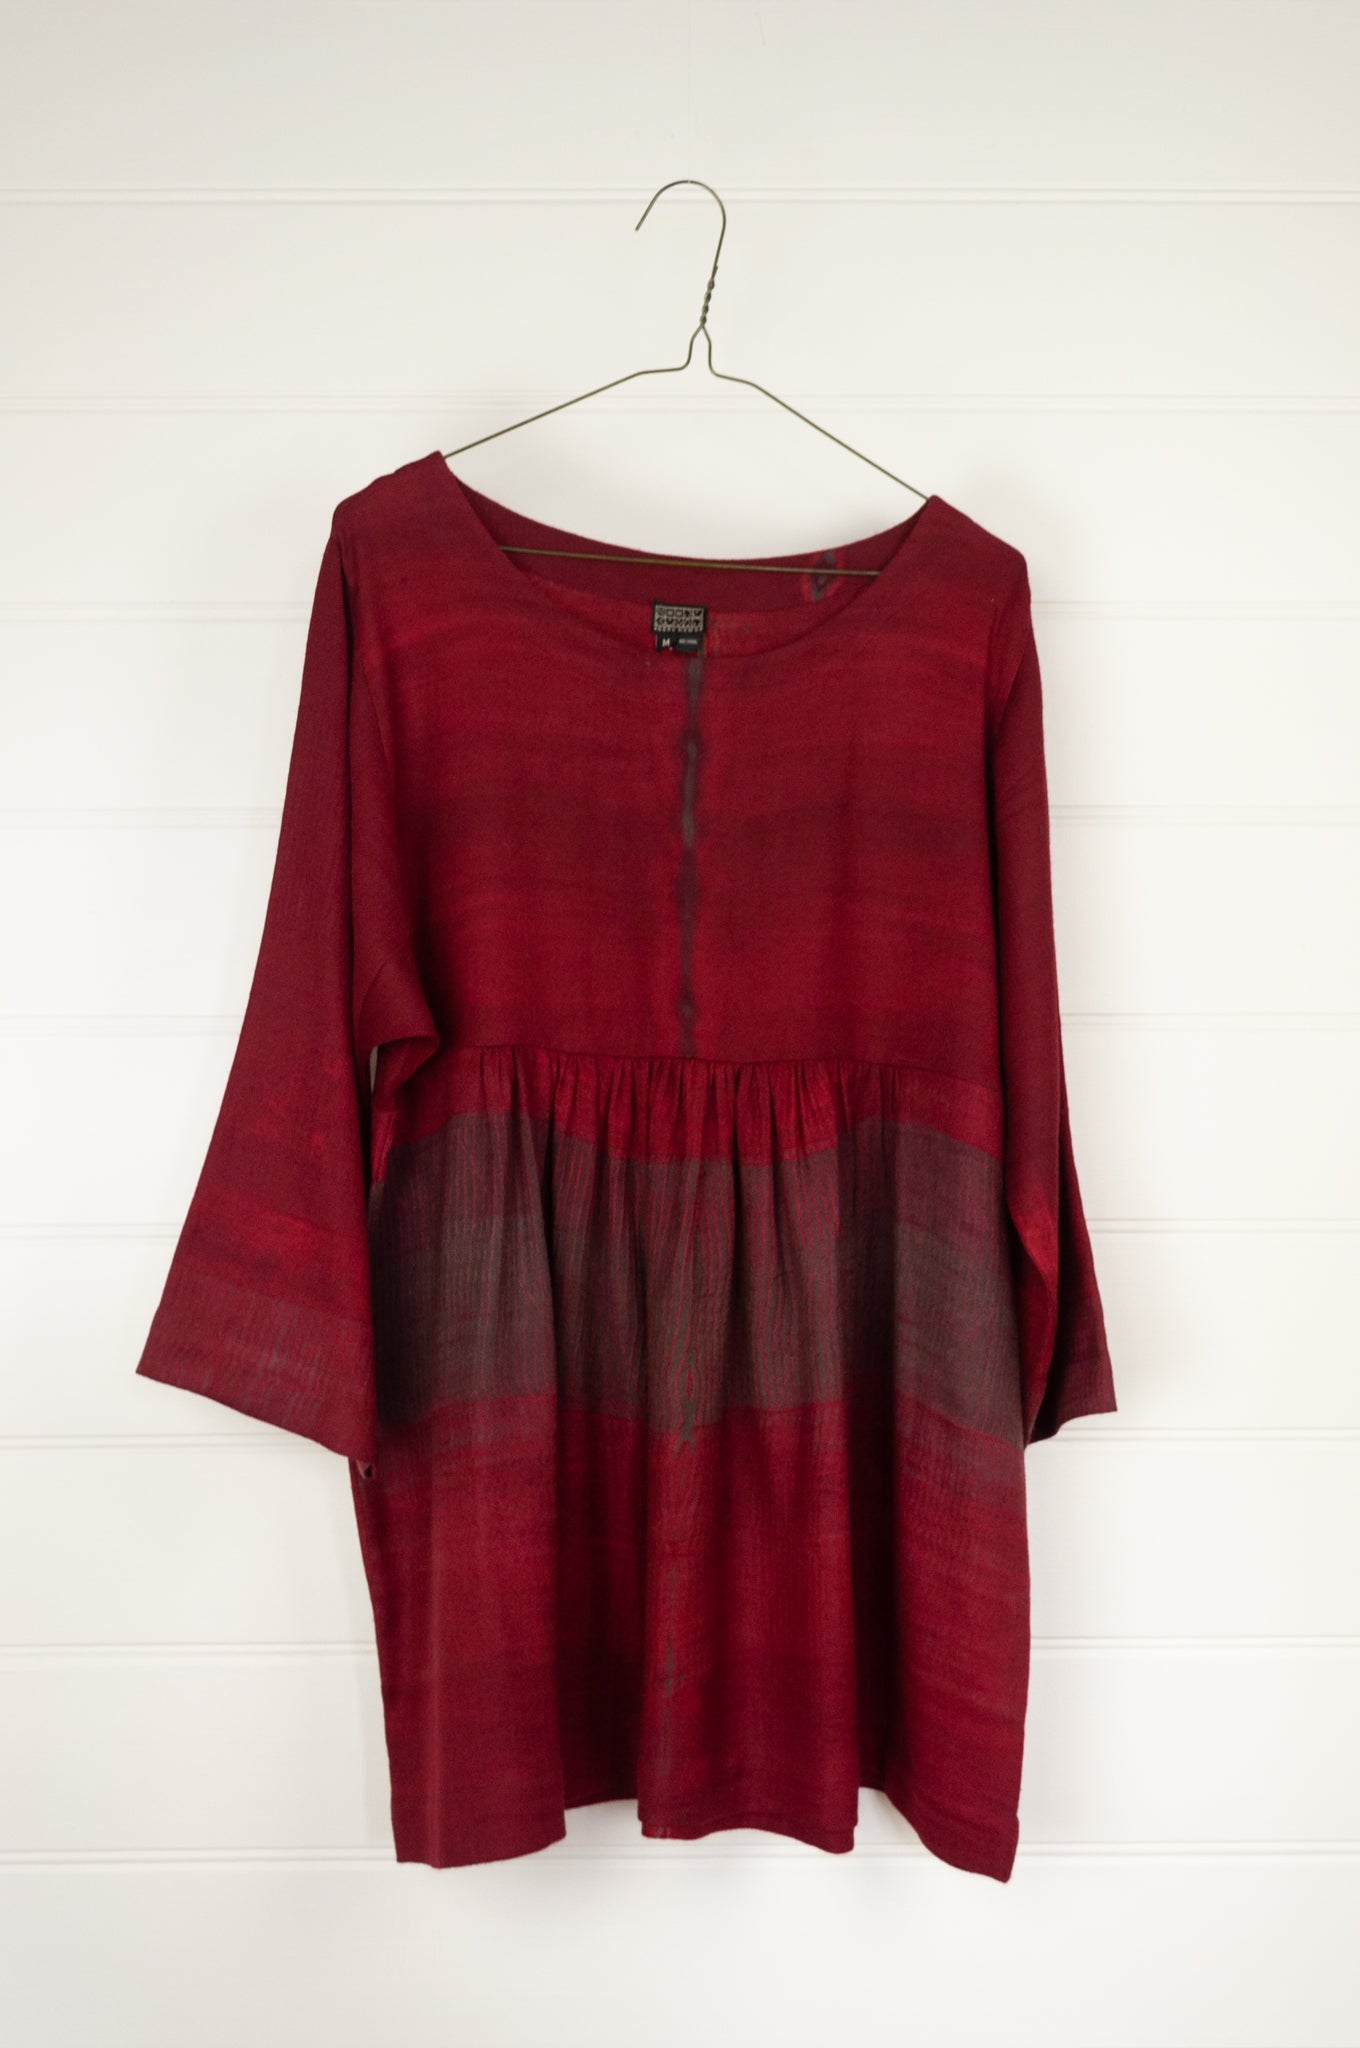 Neeru Kumar Cara wool shibori dyed peplum top in deep crimson.